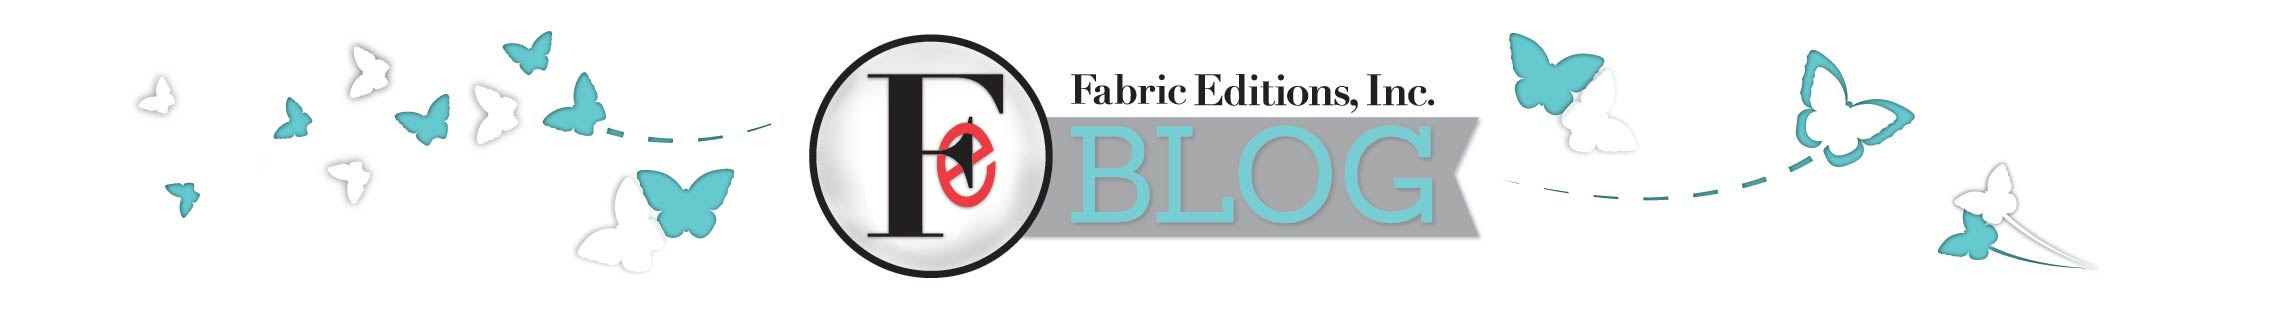 Fabric Editions Blog